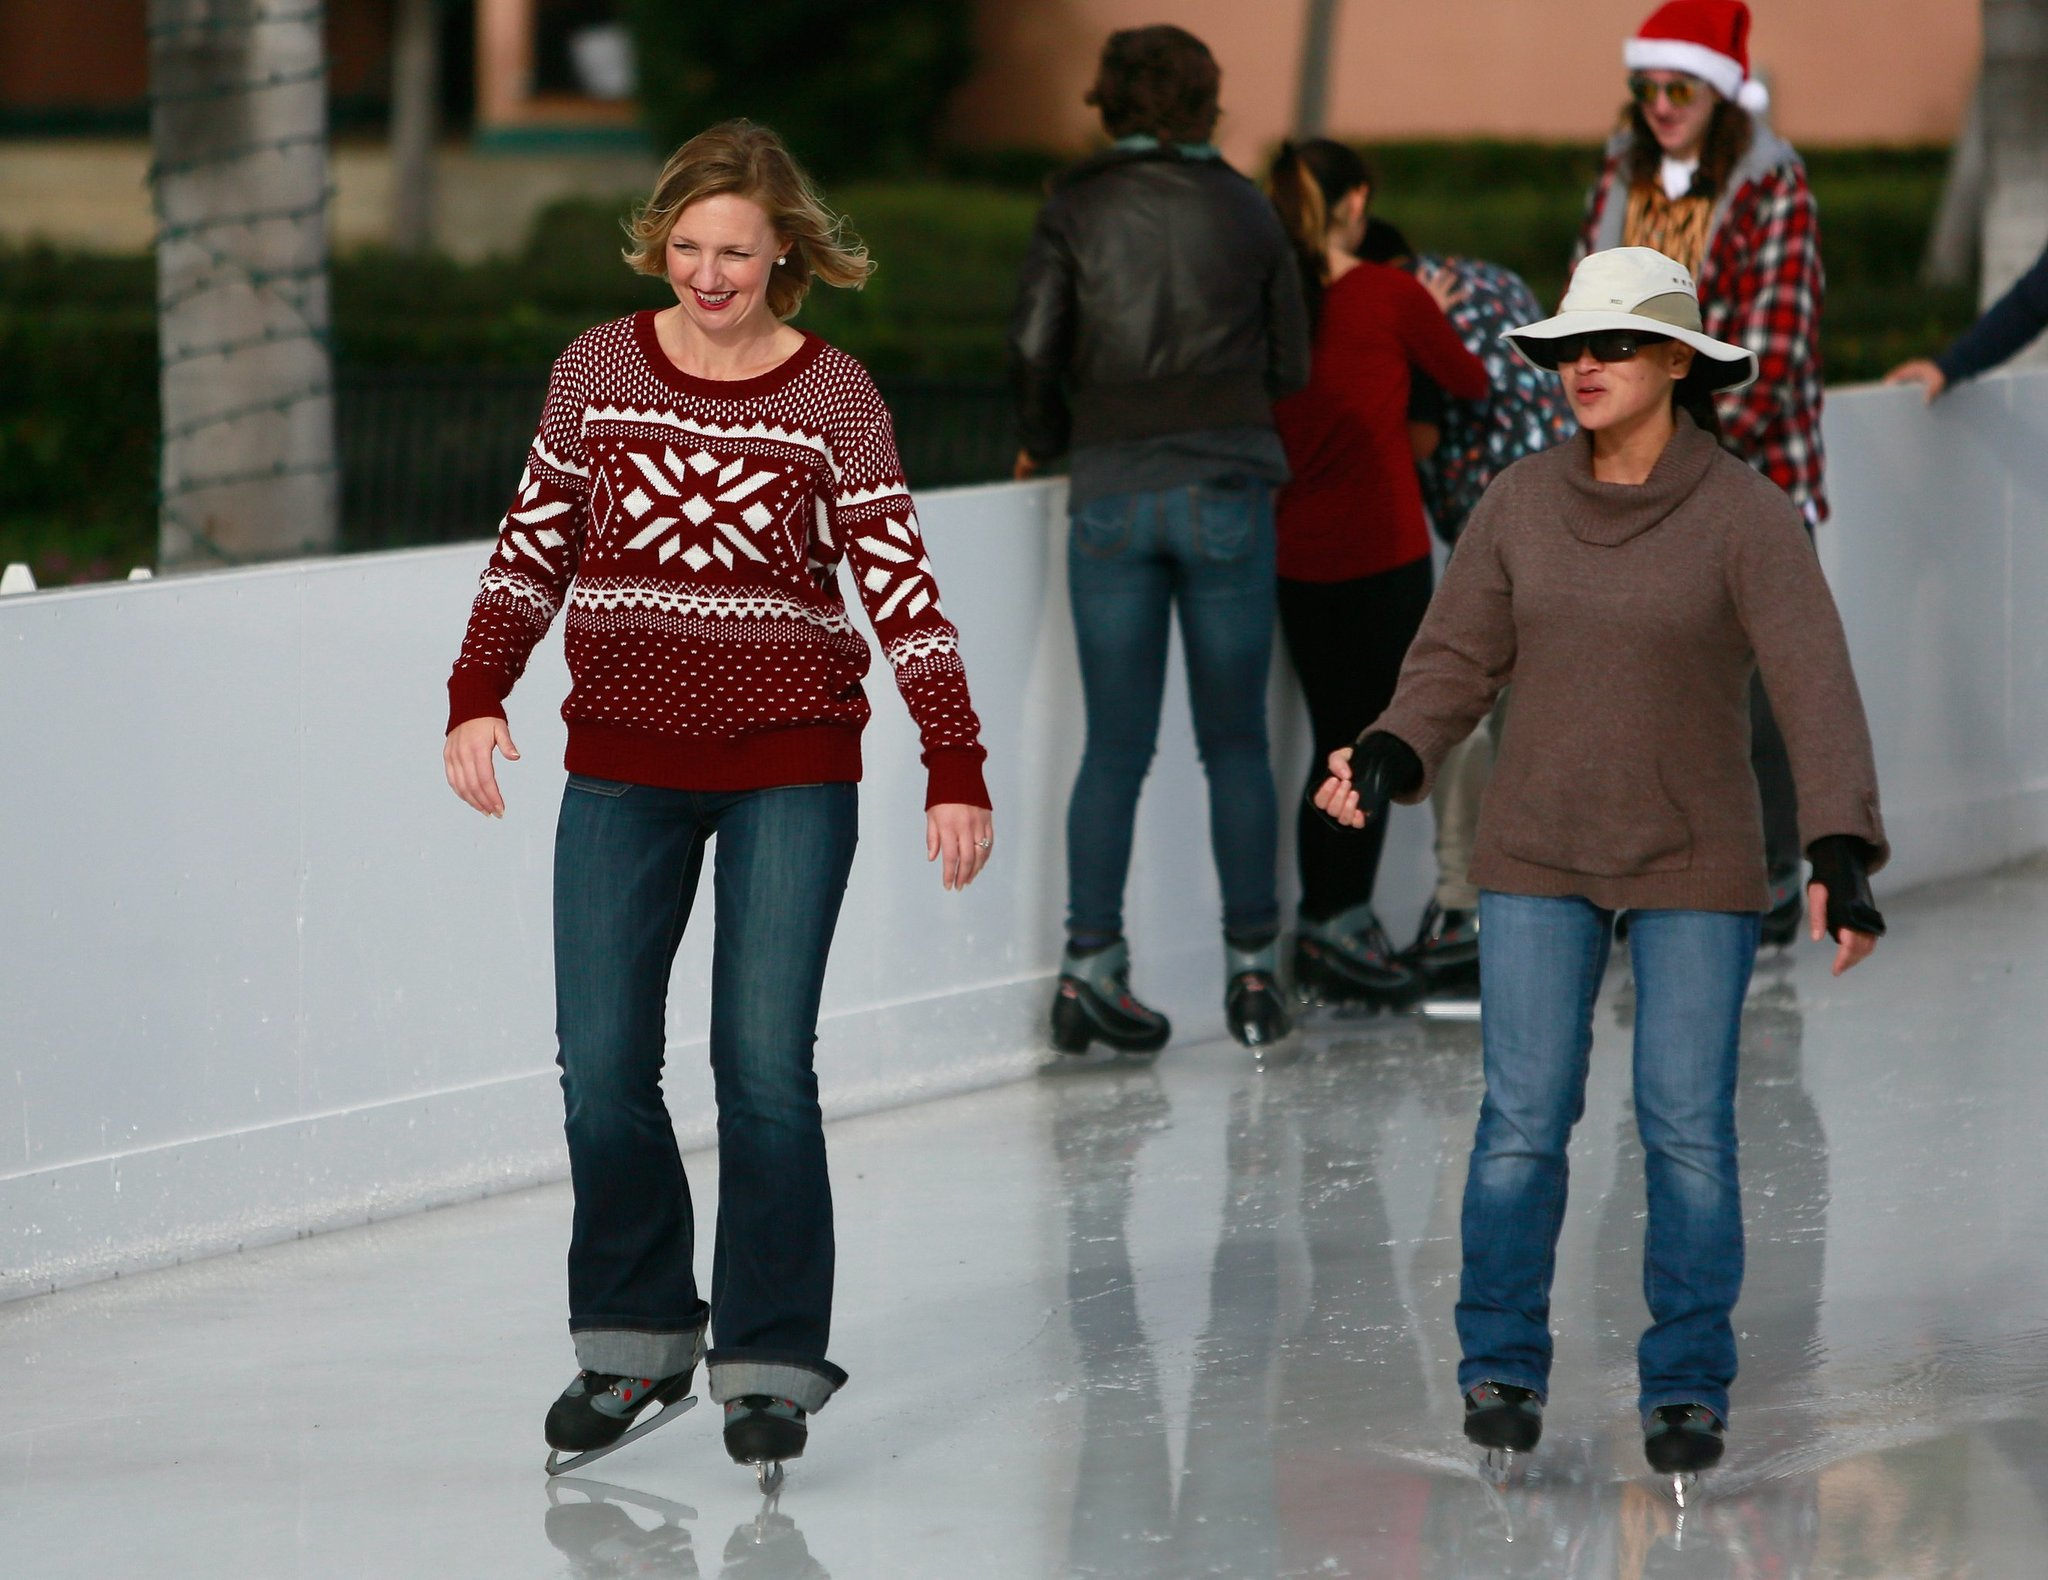 A guide to san diegos outdoor ice skating rinks the san diego a guide to san diegos outdoor ice skating rinks the san diego union tribune solutioingenieria Choice Image